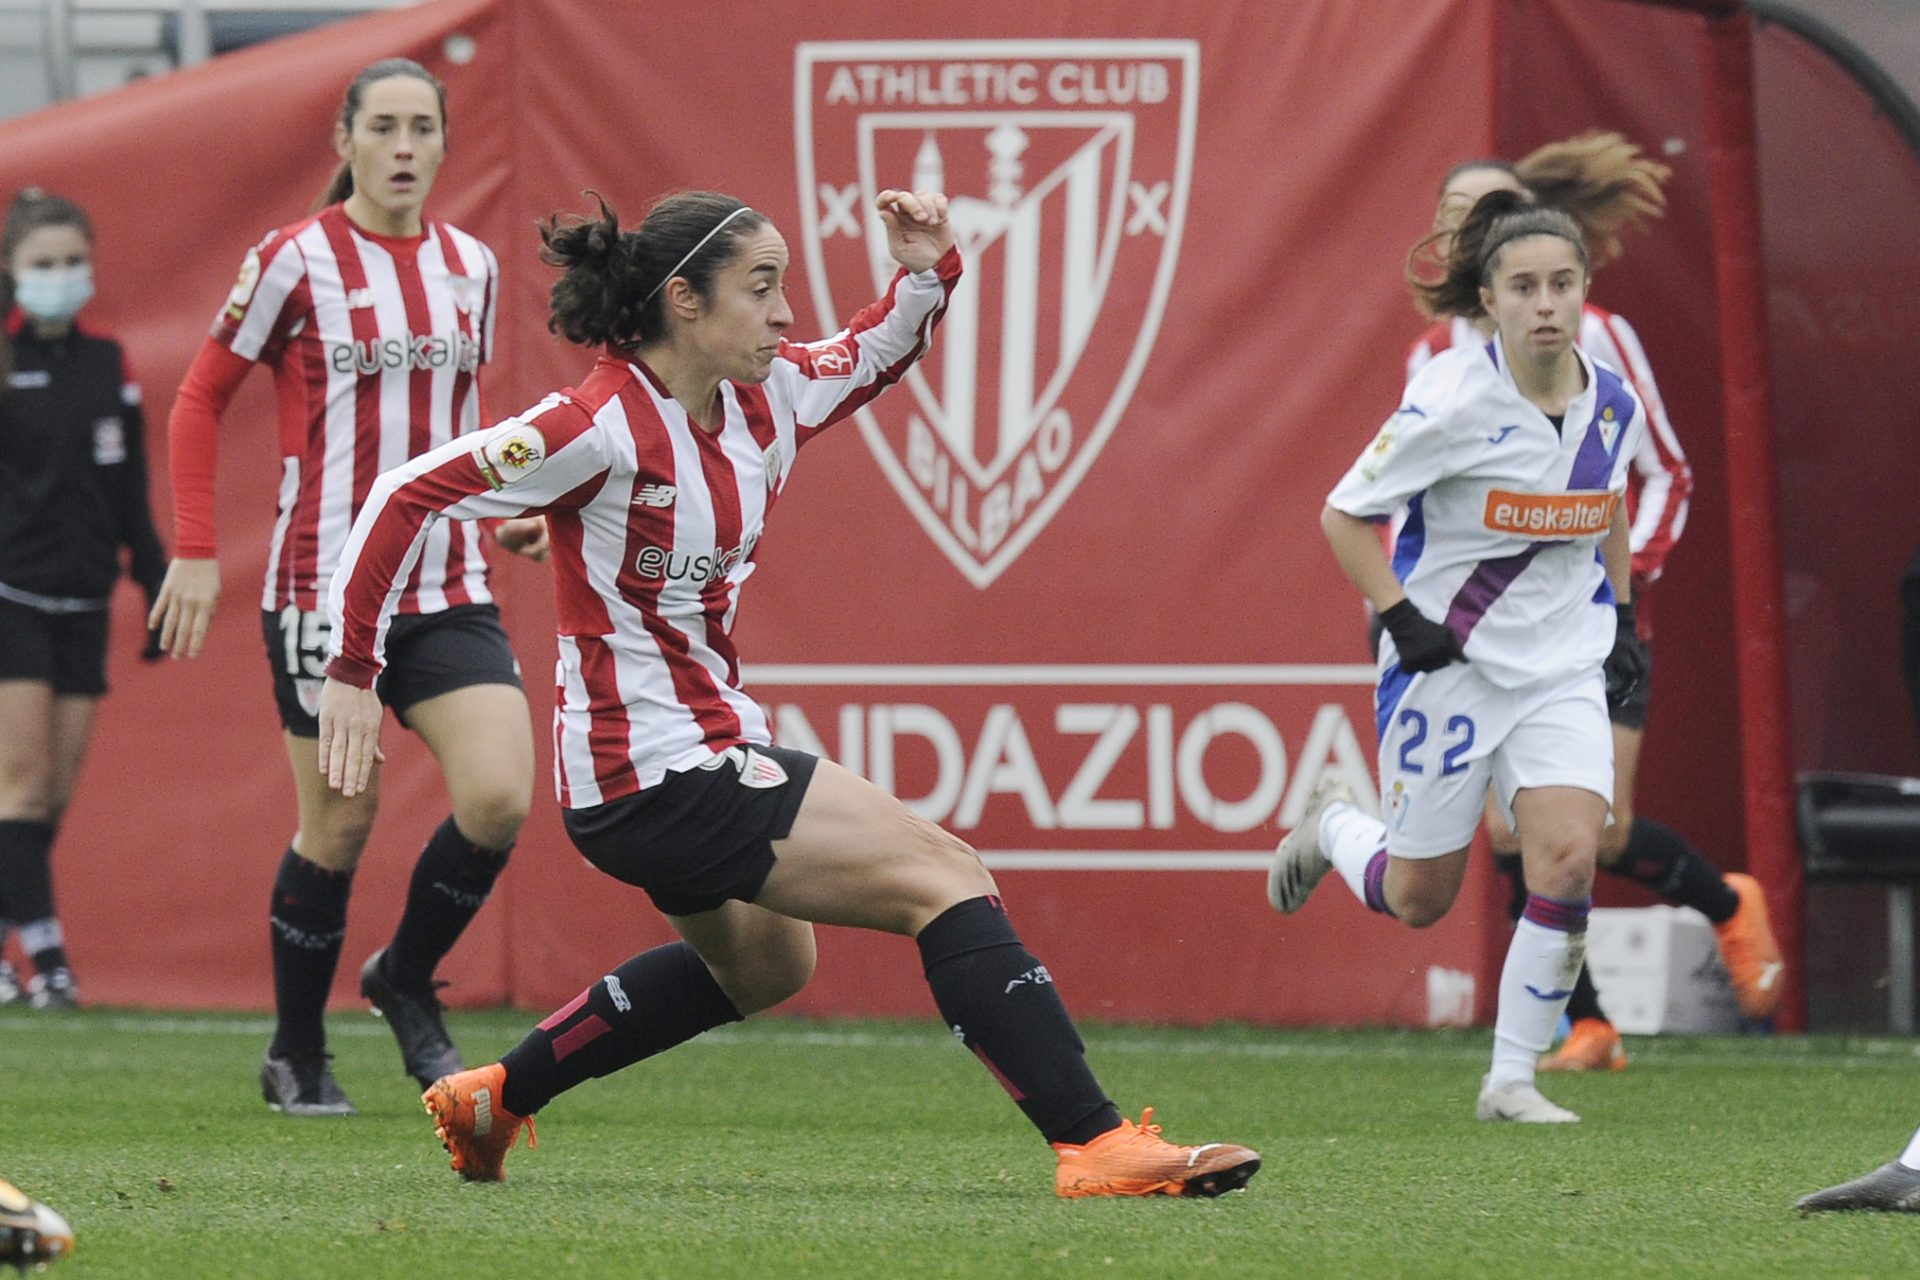 Athletic Club – SD Eibar | M15 Primera Iberdrola